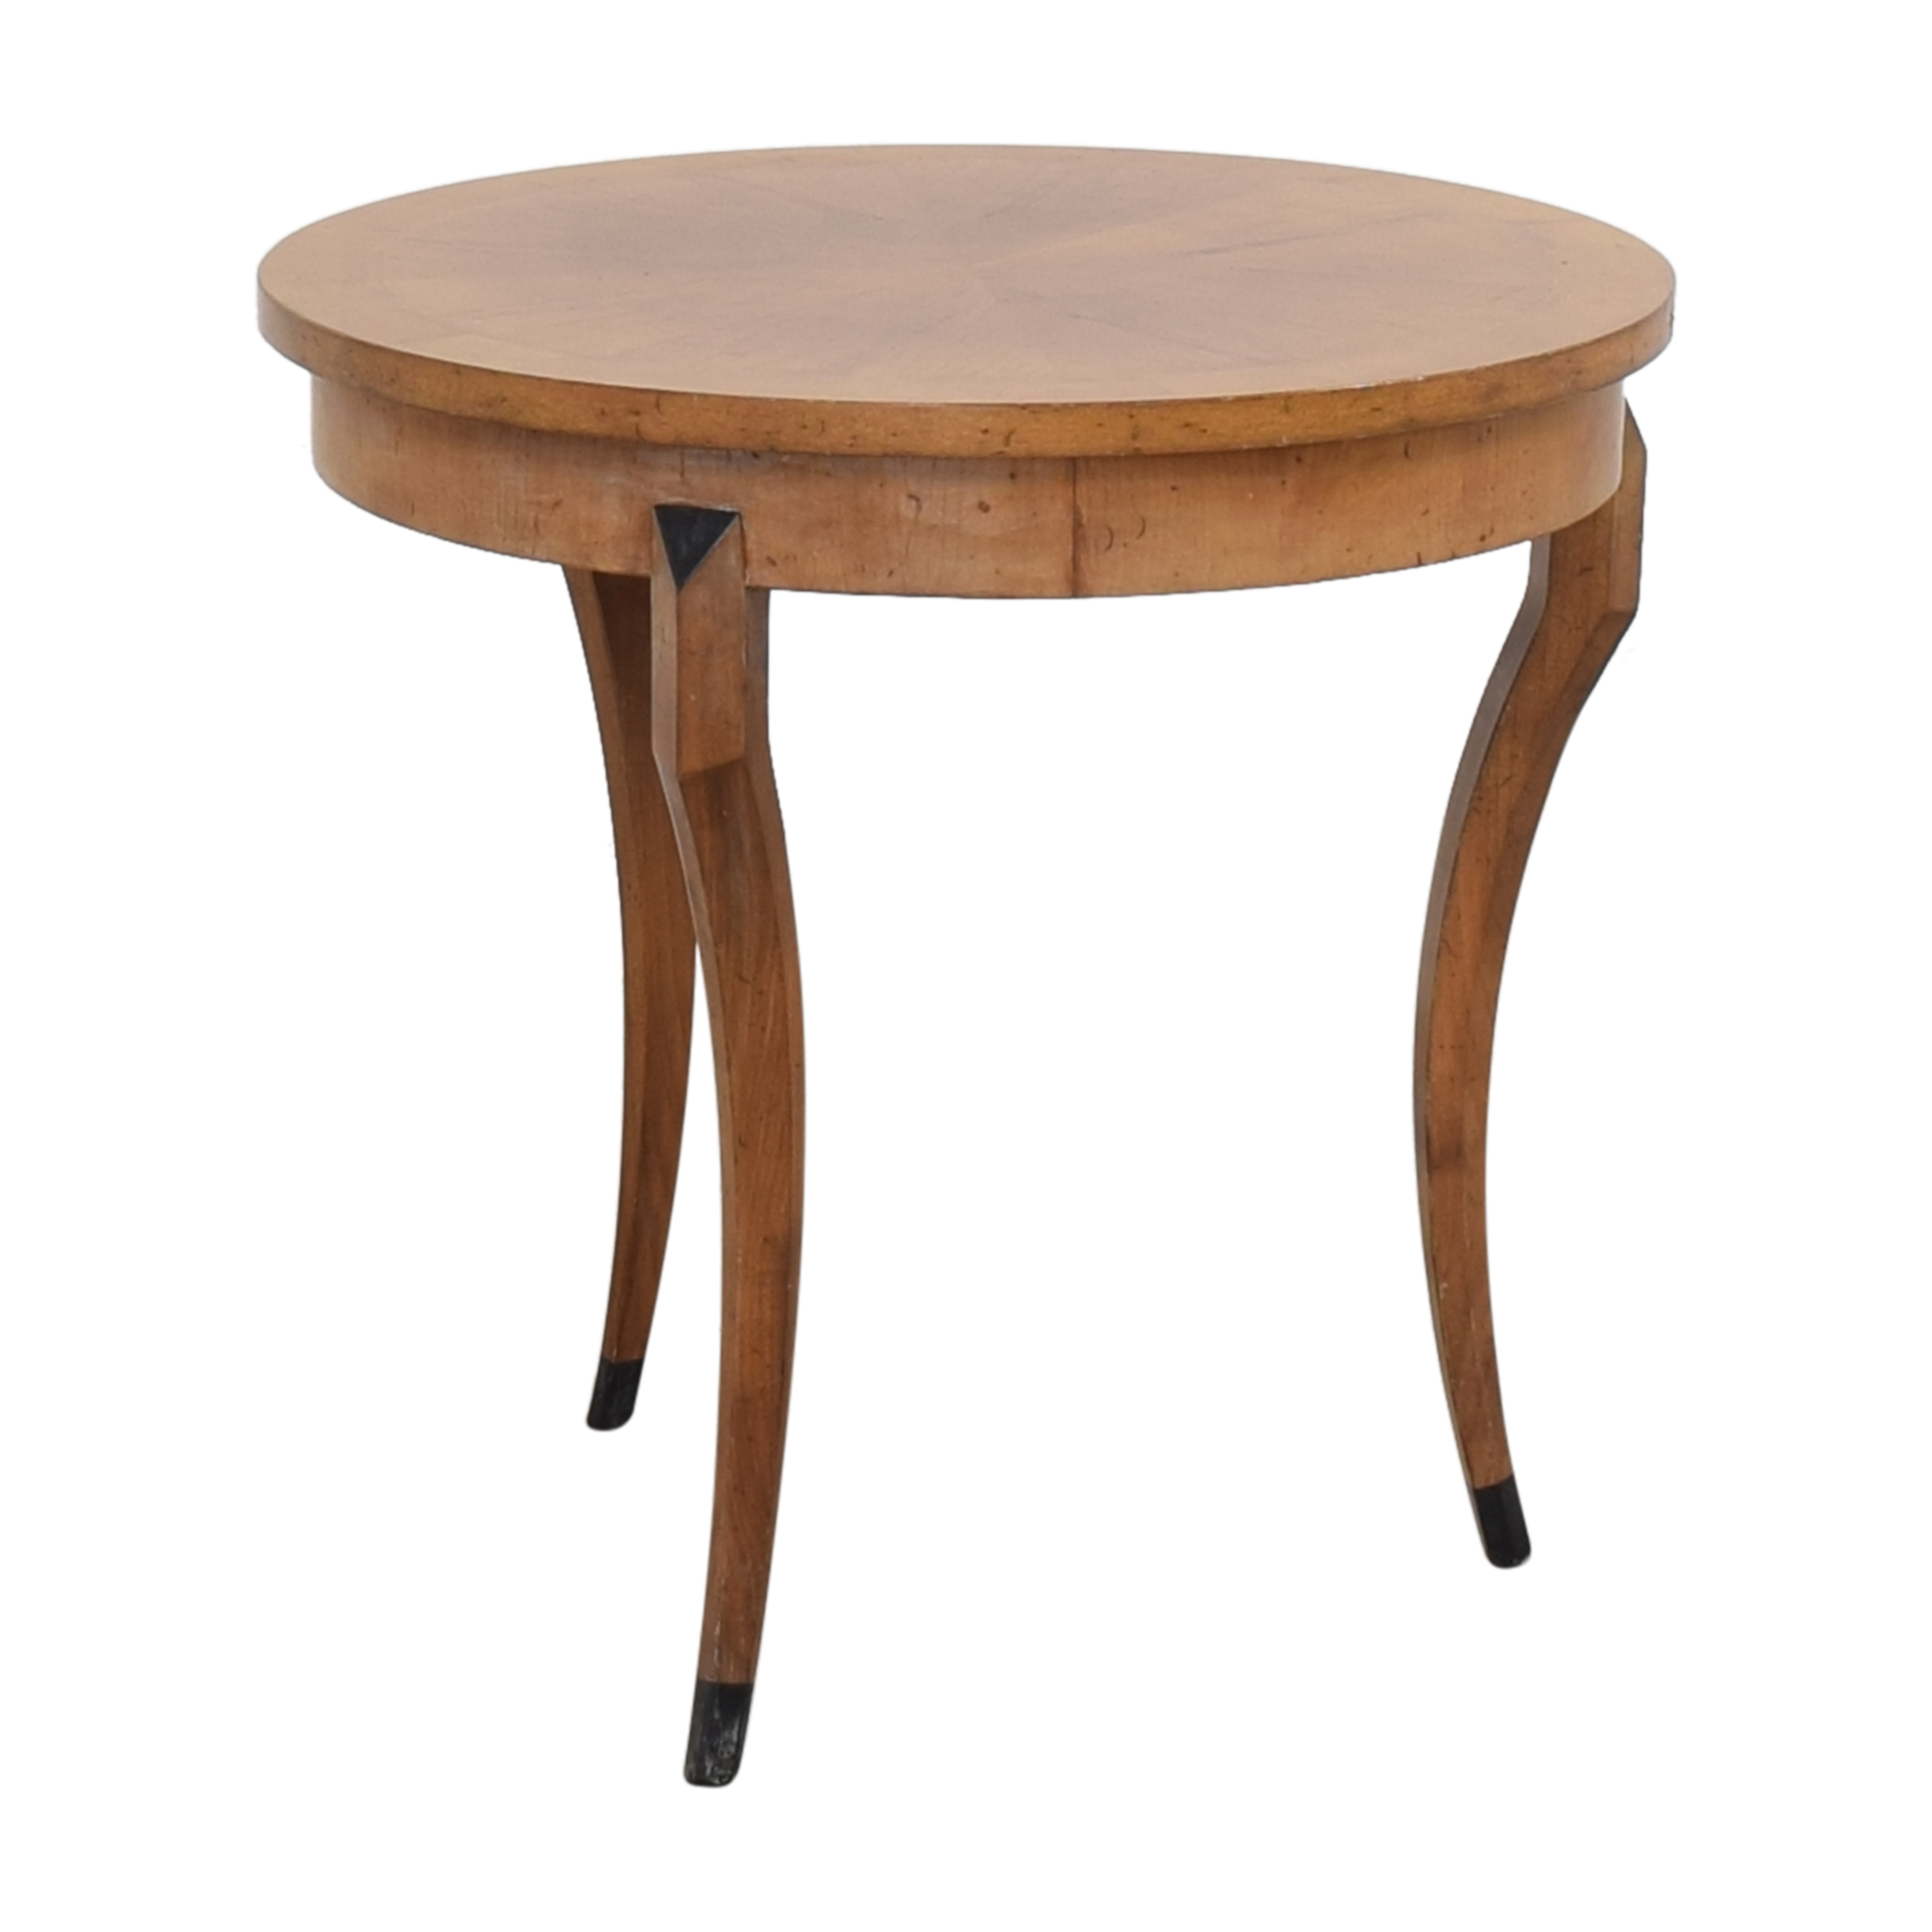 Bloomingdale's Bloomingdale's Round Accent Table second hand